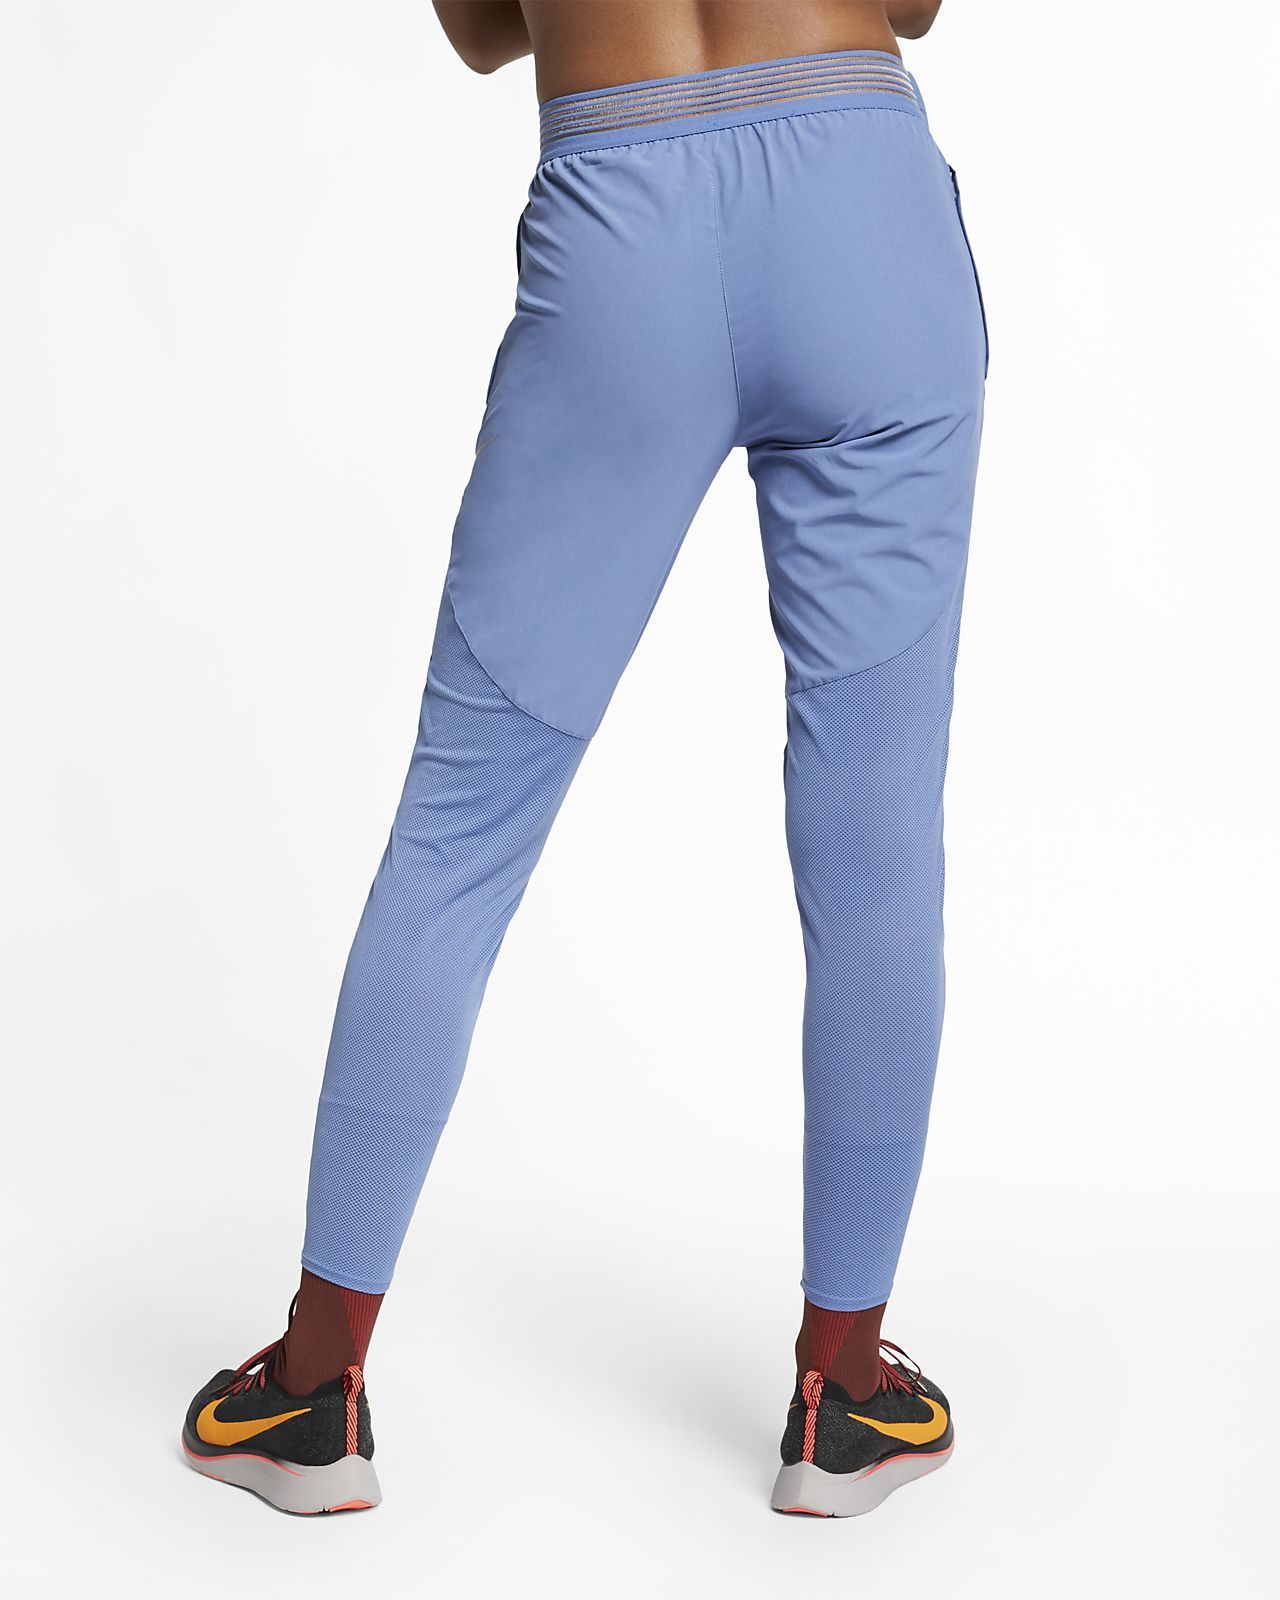 6230344a8eb4 Nike Flex Essential Women s Running Trousers. Nike.com HU